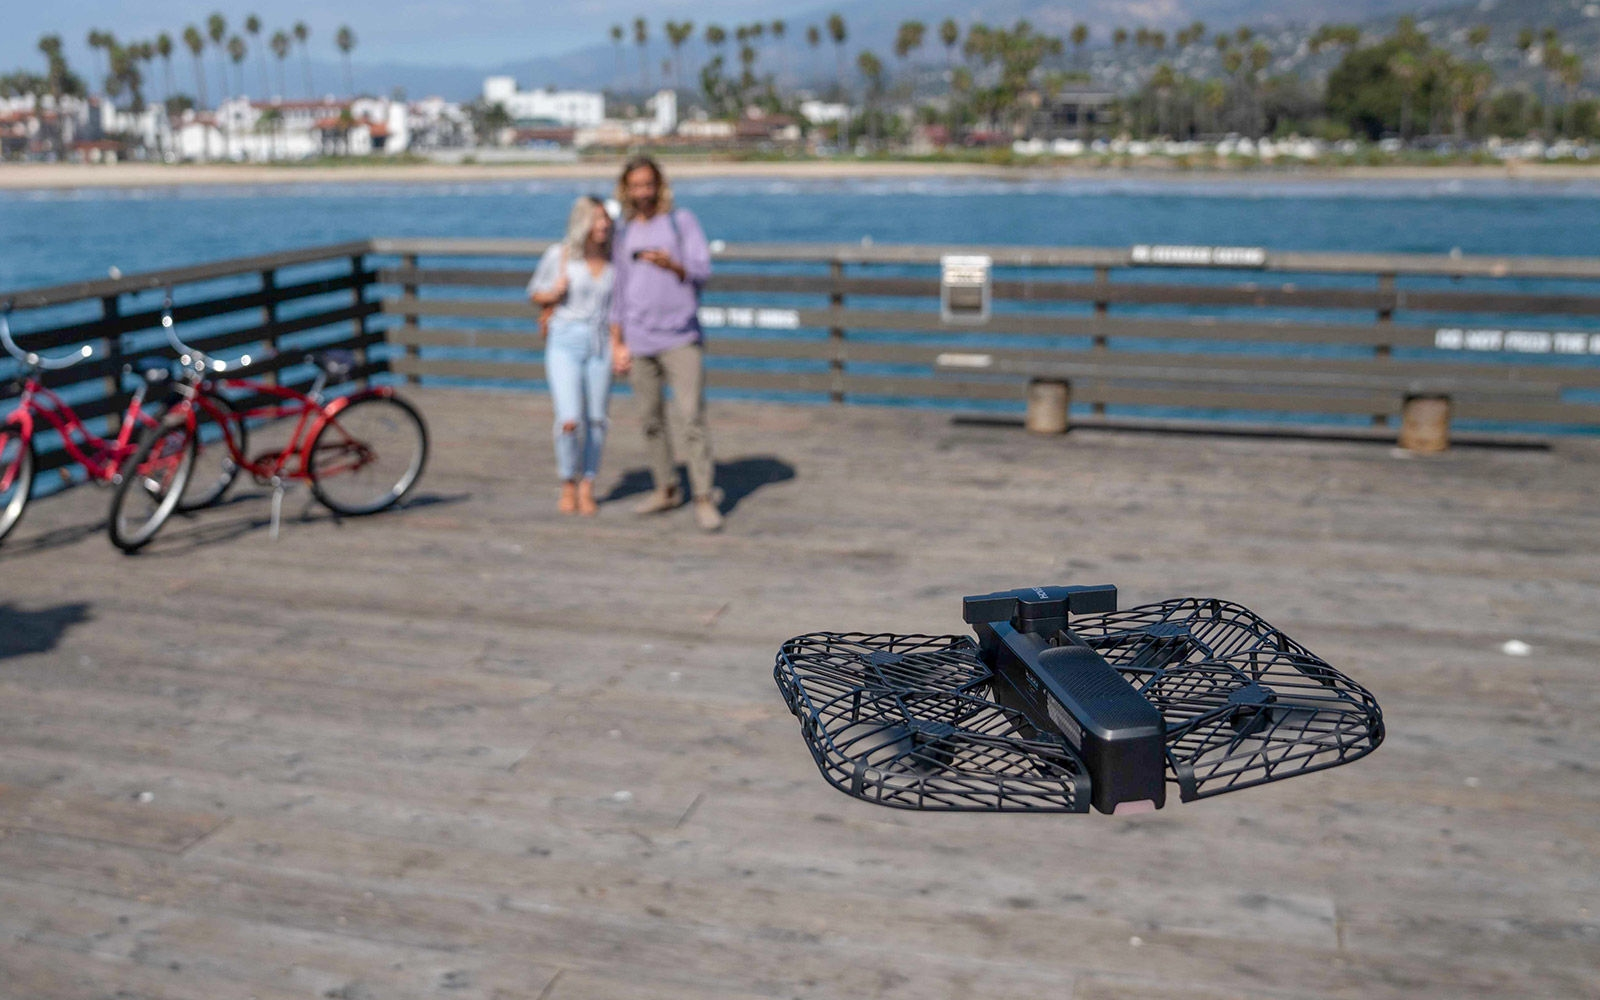 Hover 2 foldable drone can look for obstacles as it flies itself | DeviceDaily.com